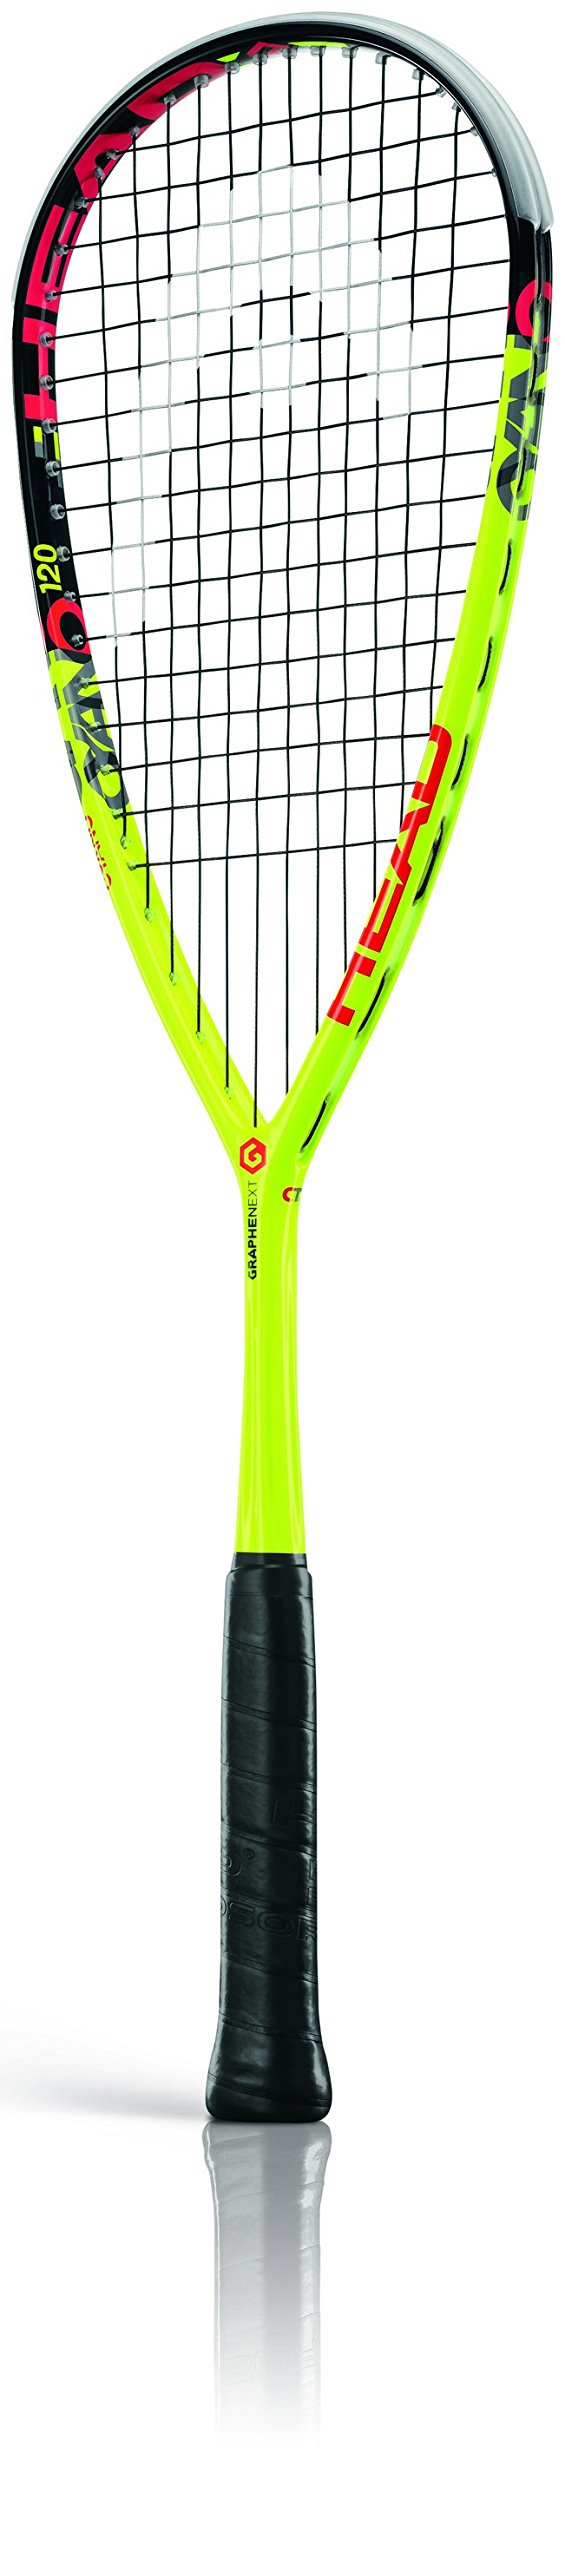 HEAD Graphene XT CYANO 120 Squash Racquet, Yellow, One Size